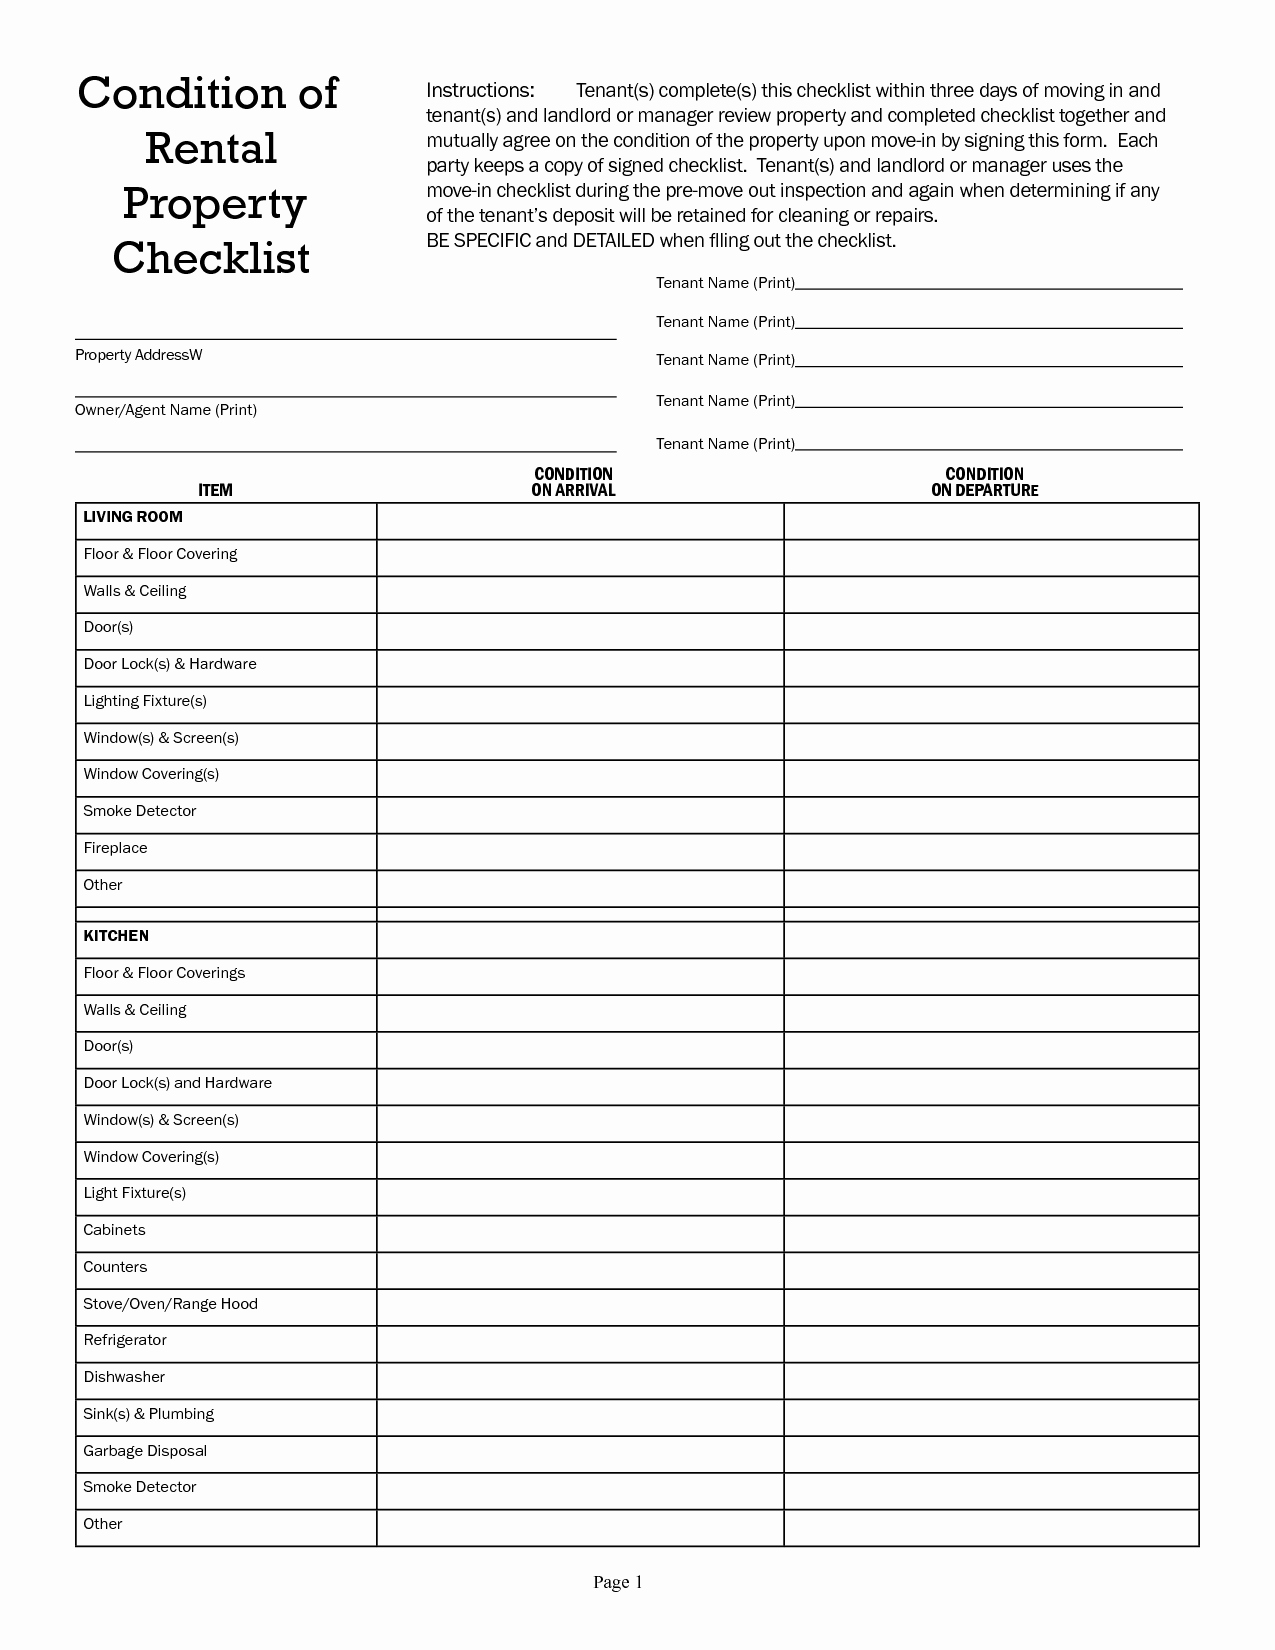 Checklist Home Inspection Checklist Template